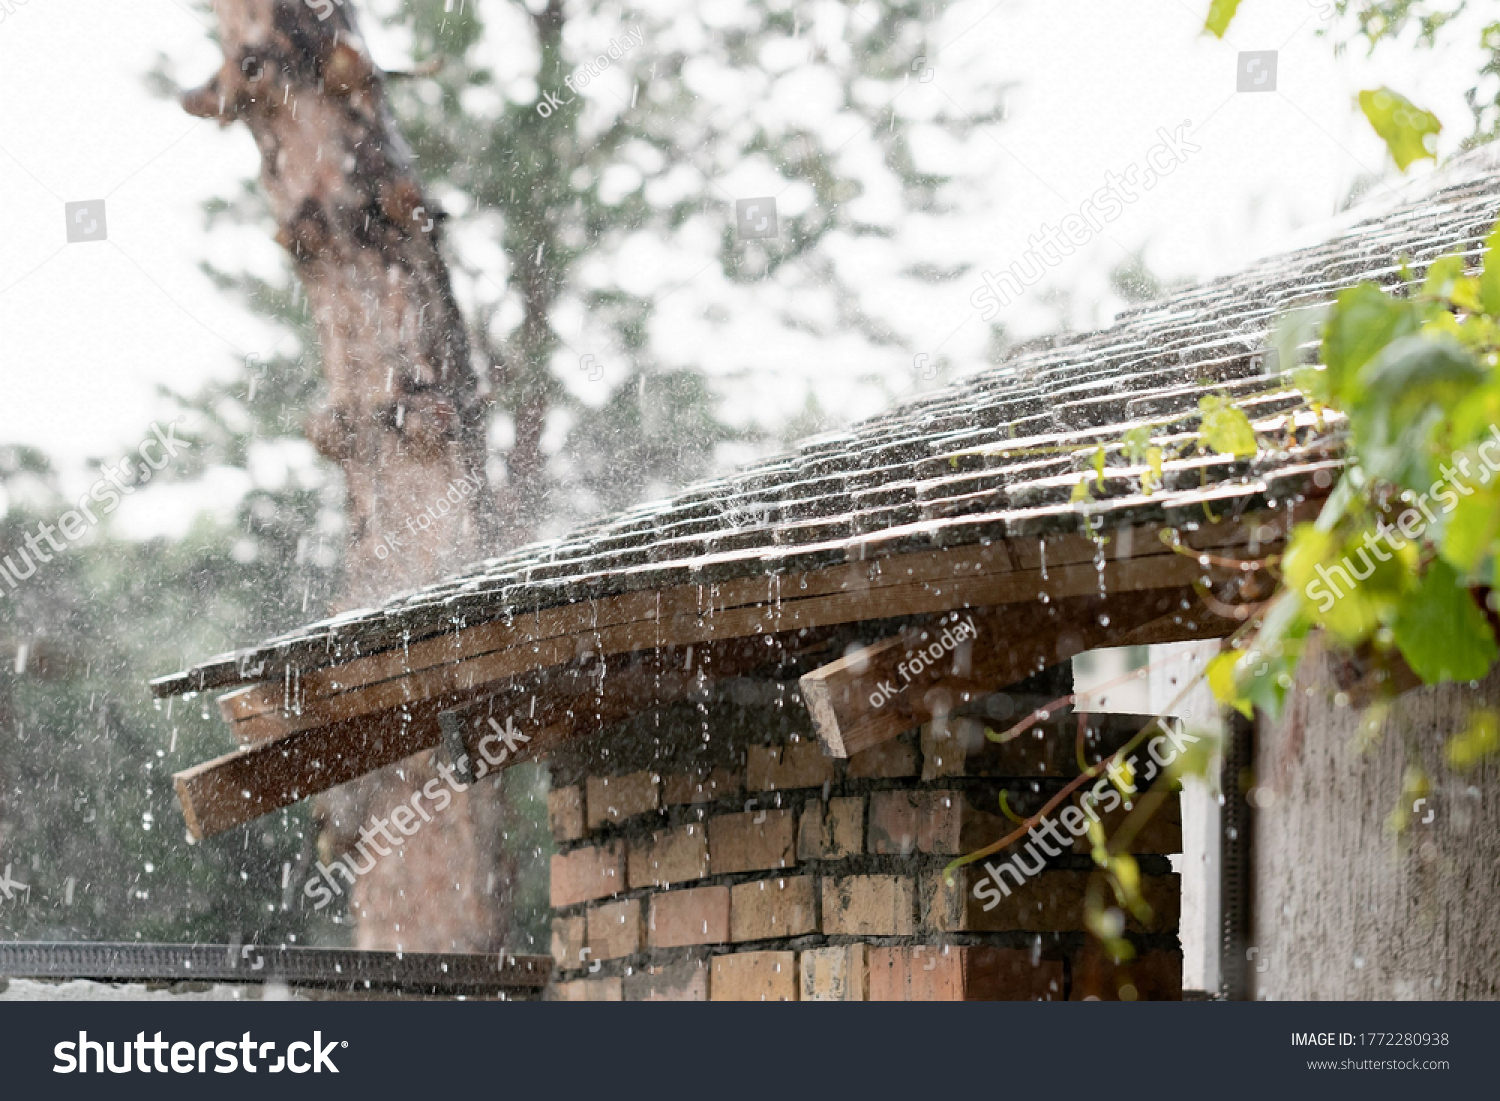 stock-photo-heavy-rain-raindrops-run-fro